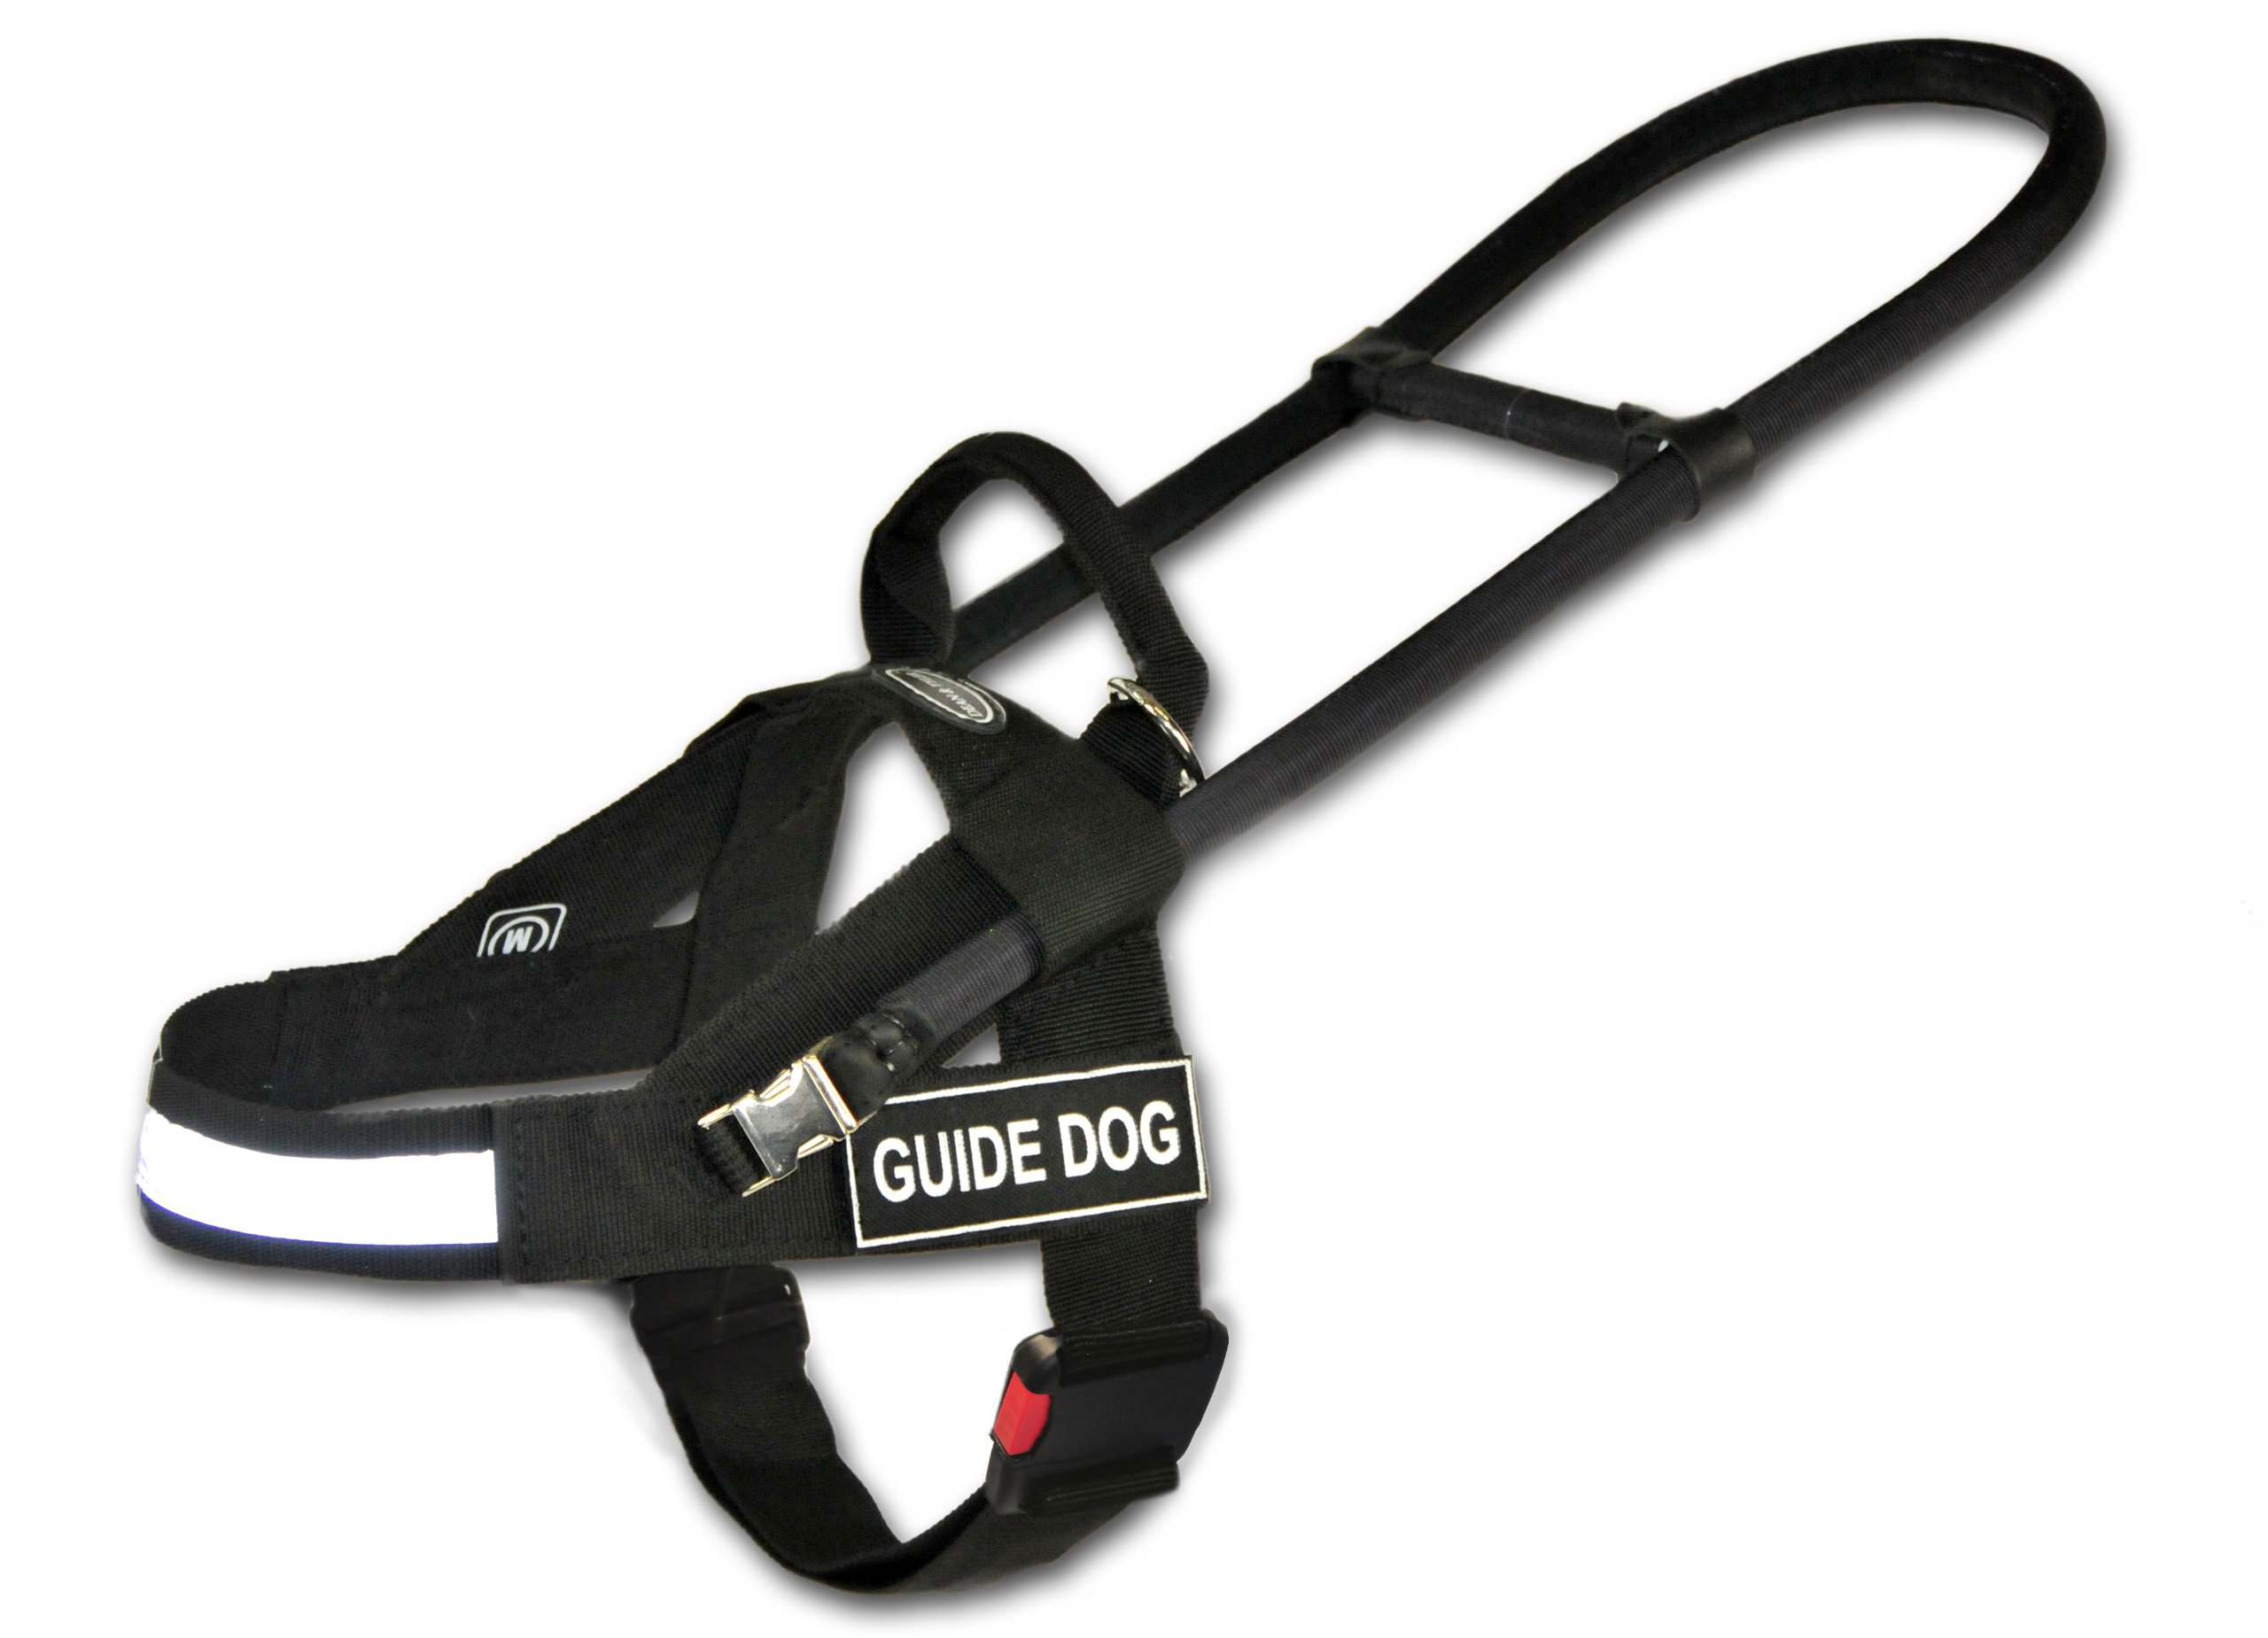 Dean and Tyler Guide Light Nickel Hardware Nylon Dog Harness, Black/Reflective, Large - Fits Girth: 29-Inch to 39-Inch, Chest Size: 26-Inch Max